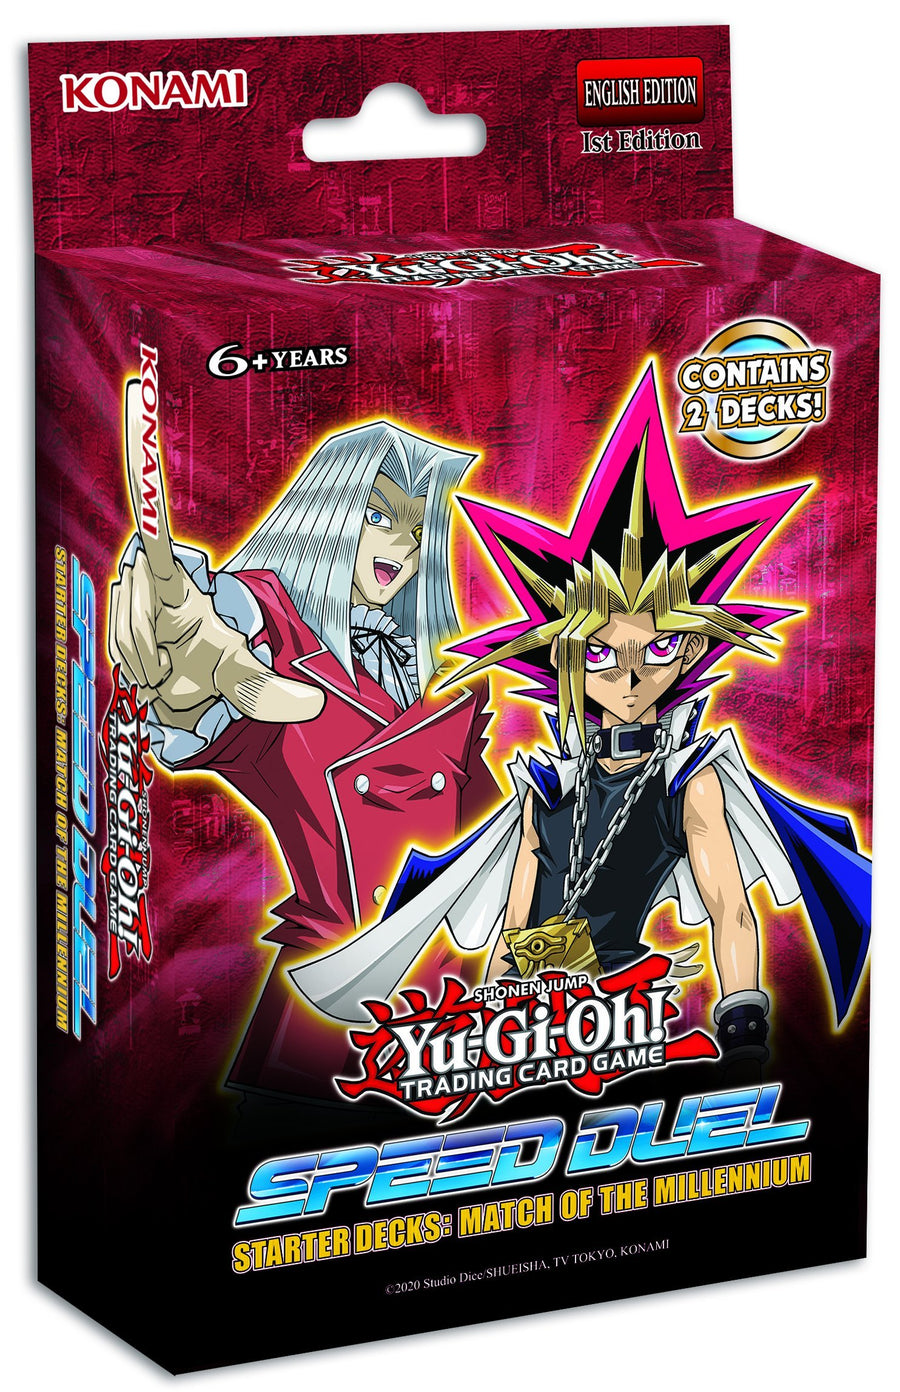 Yu-Gi-Oh! TRADING CARD GAME Speed Duel Starter Decks: Match of the Millennium & Twisted Nightmares